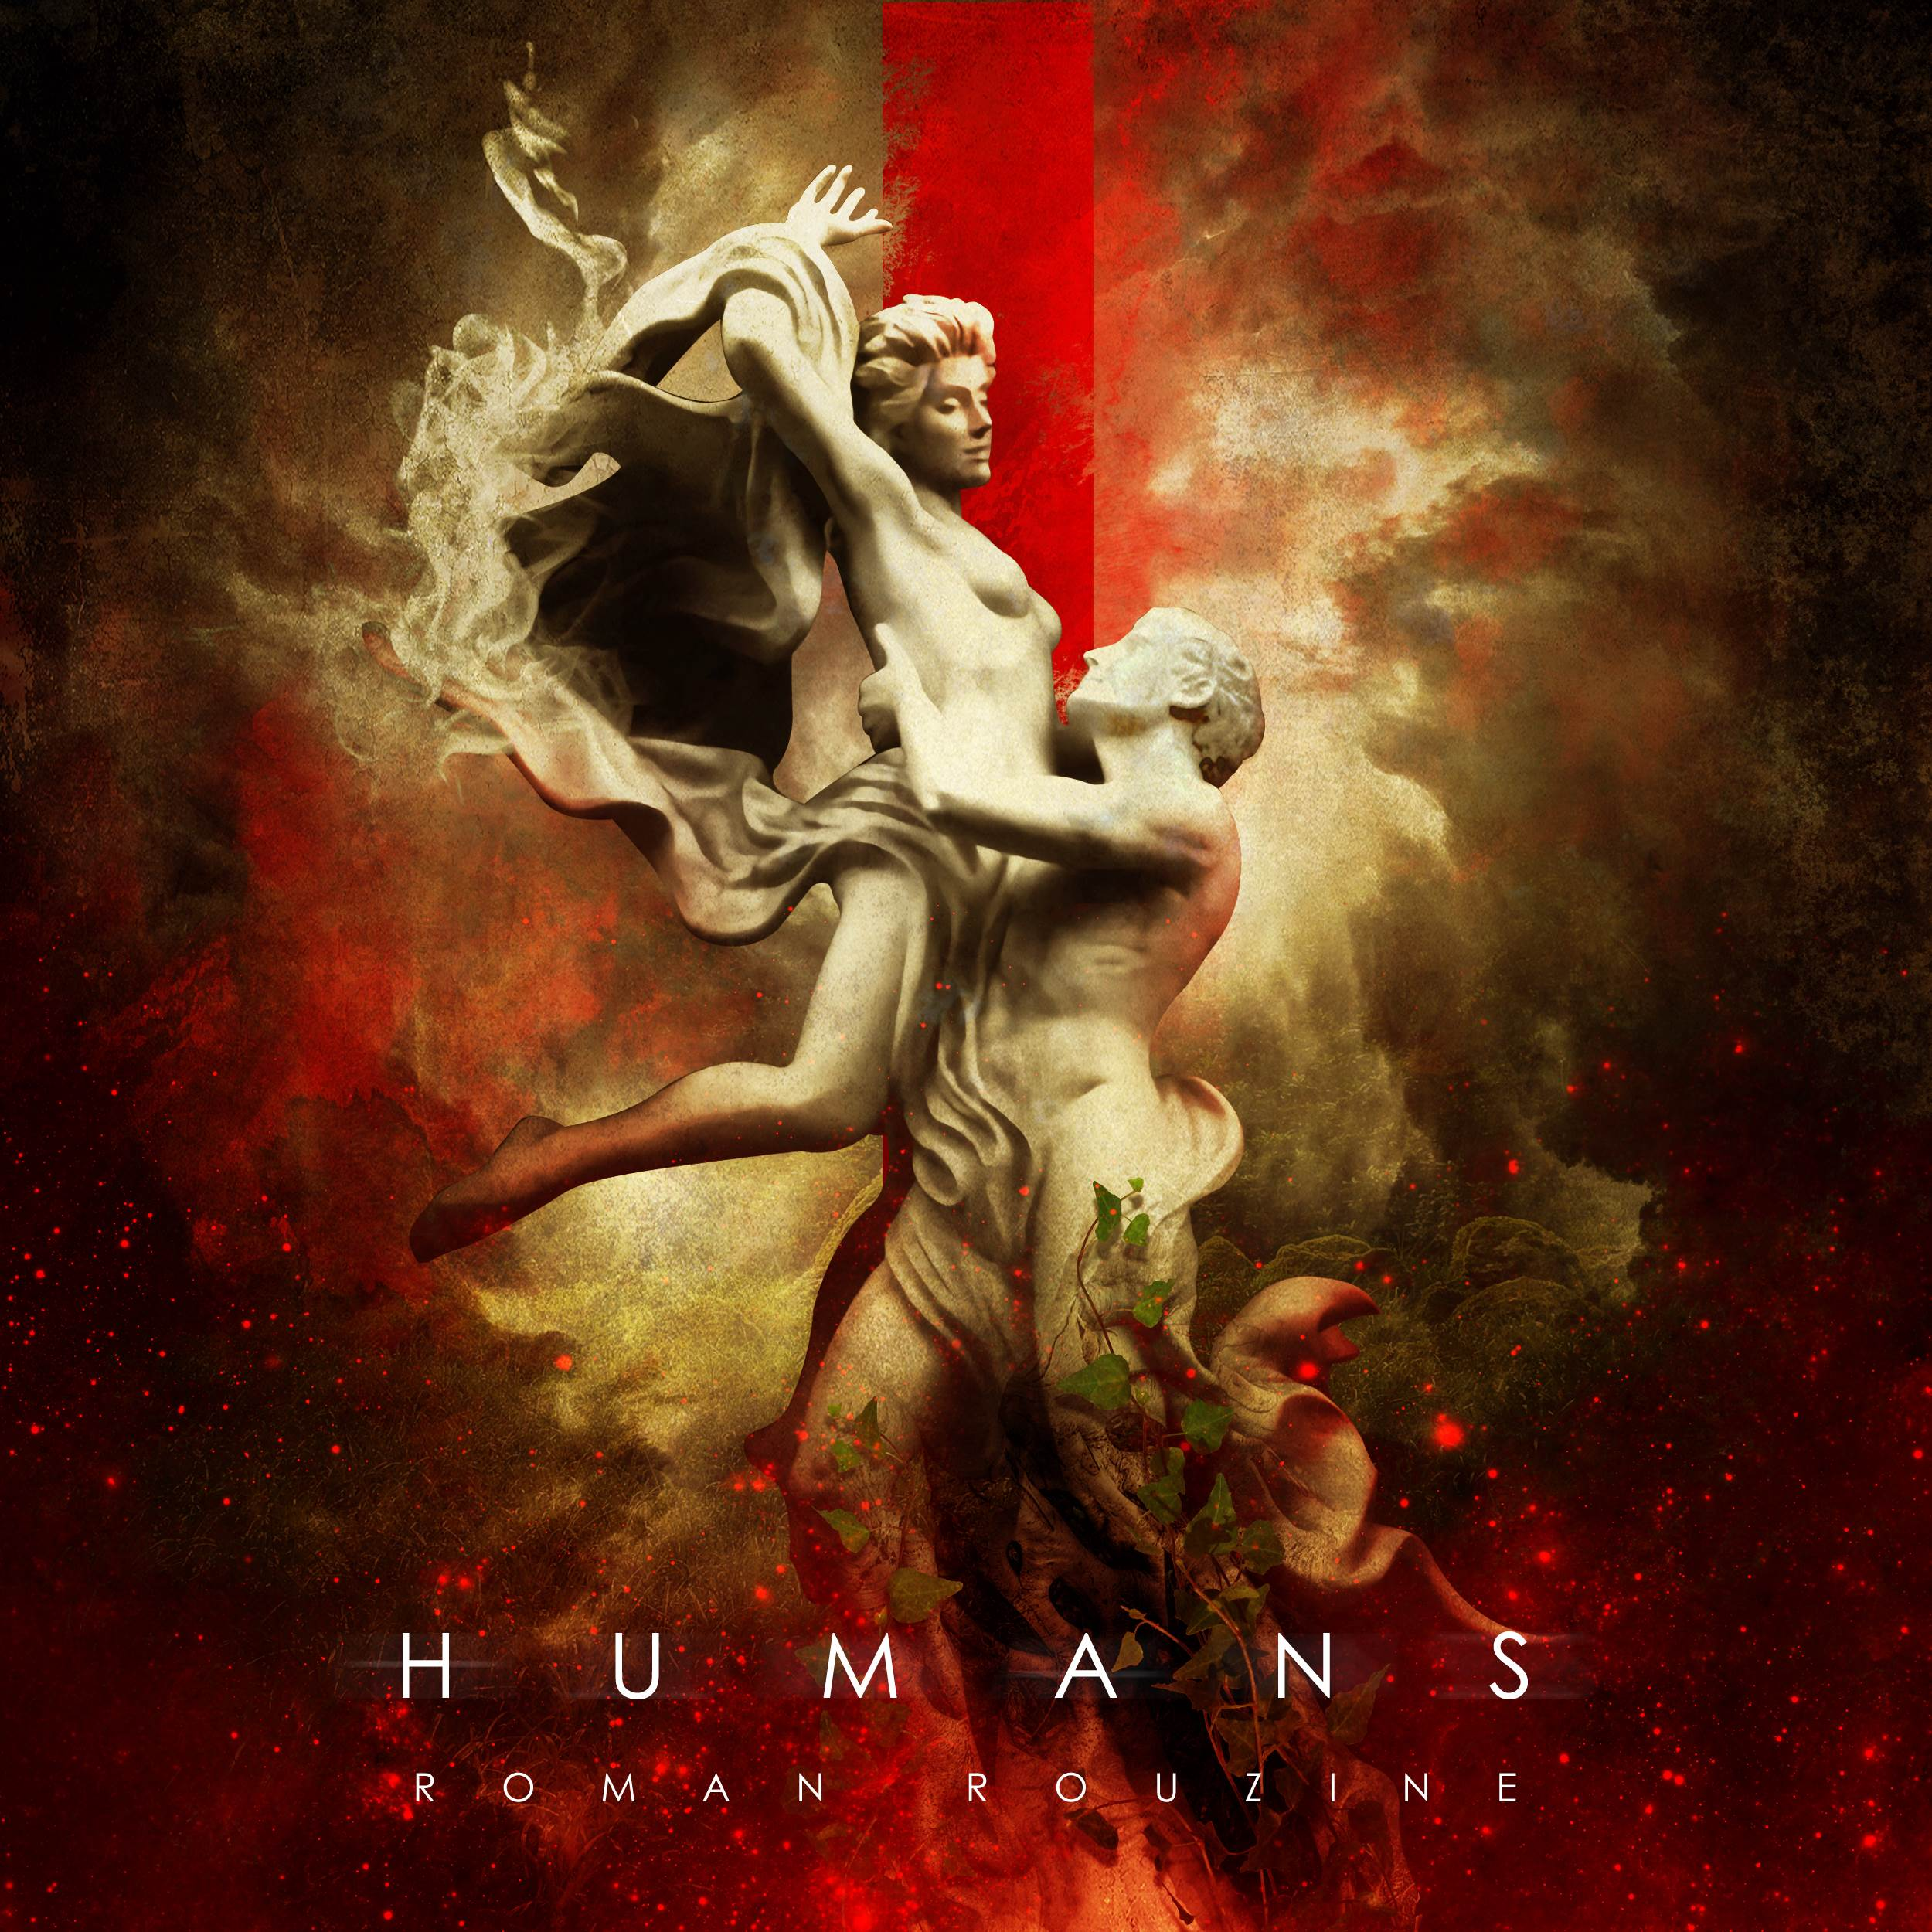 roman_rouzine_humans_cover_WEB.jpg